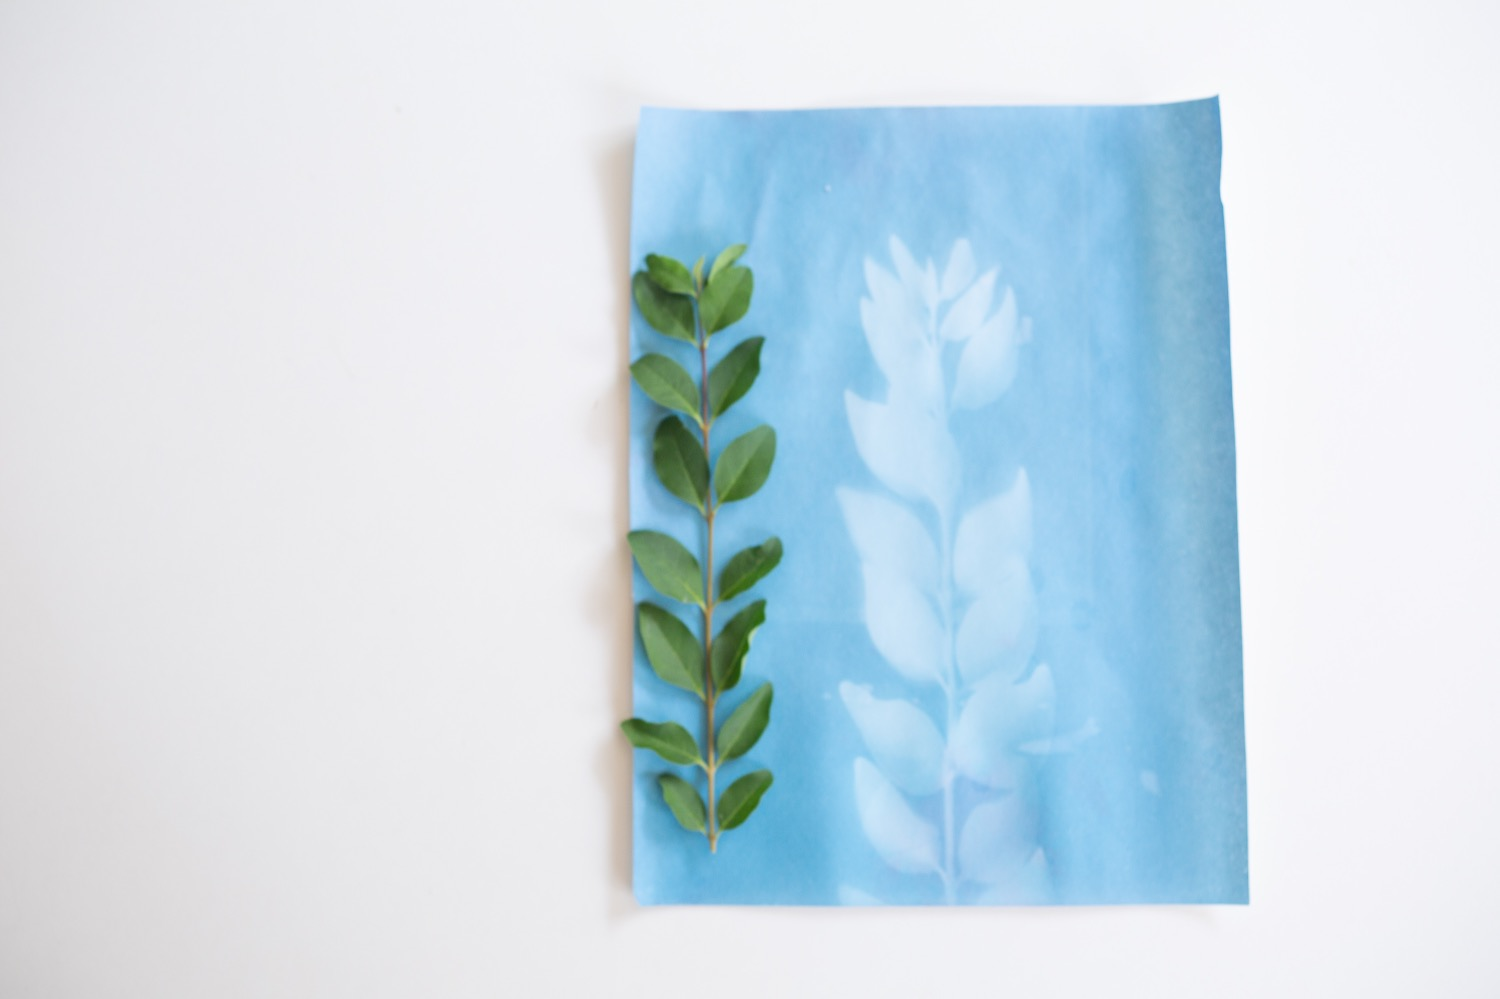 cyanotypes same day after drying photo print tutorial